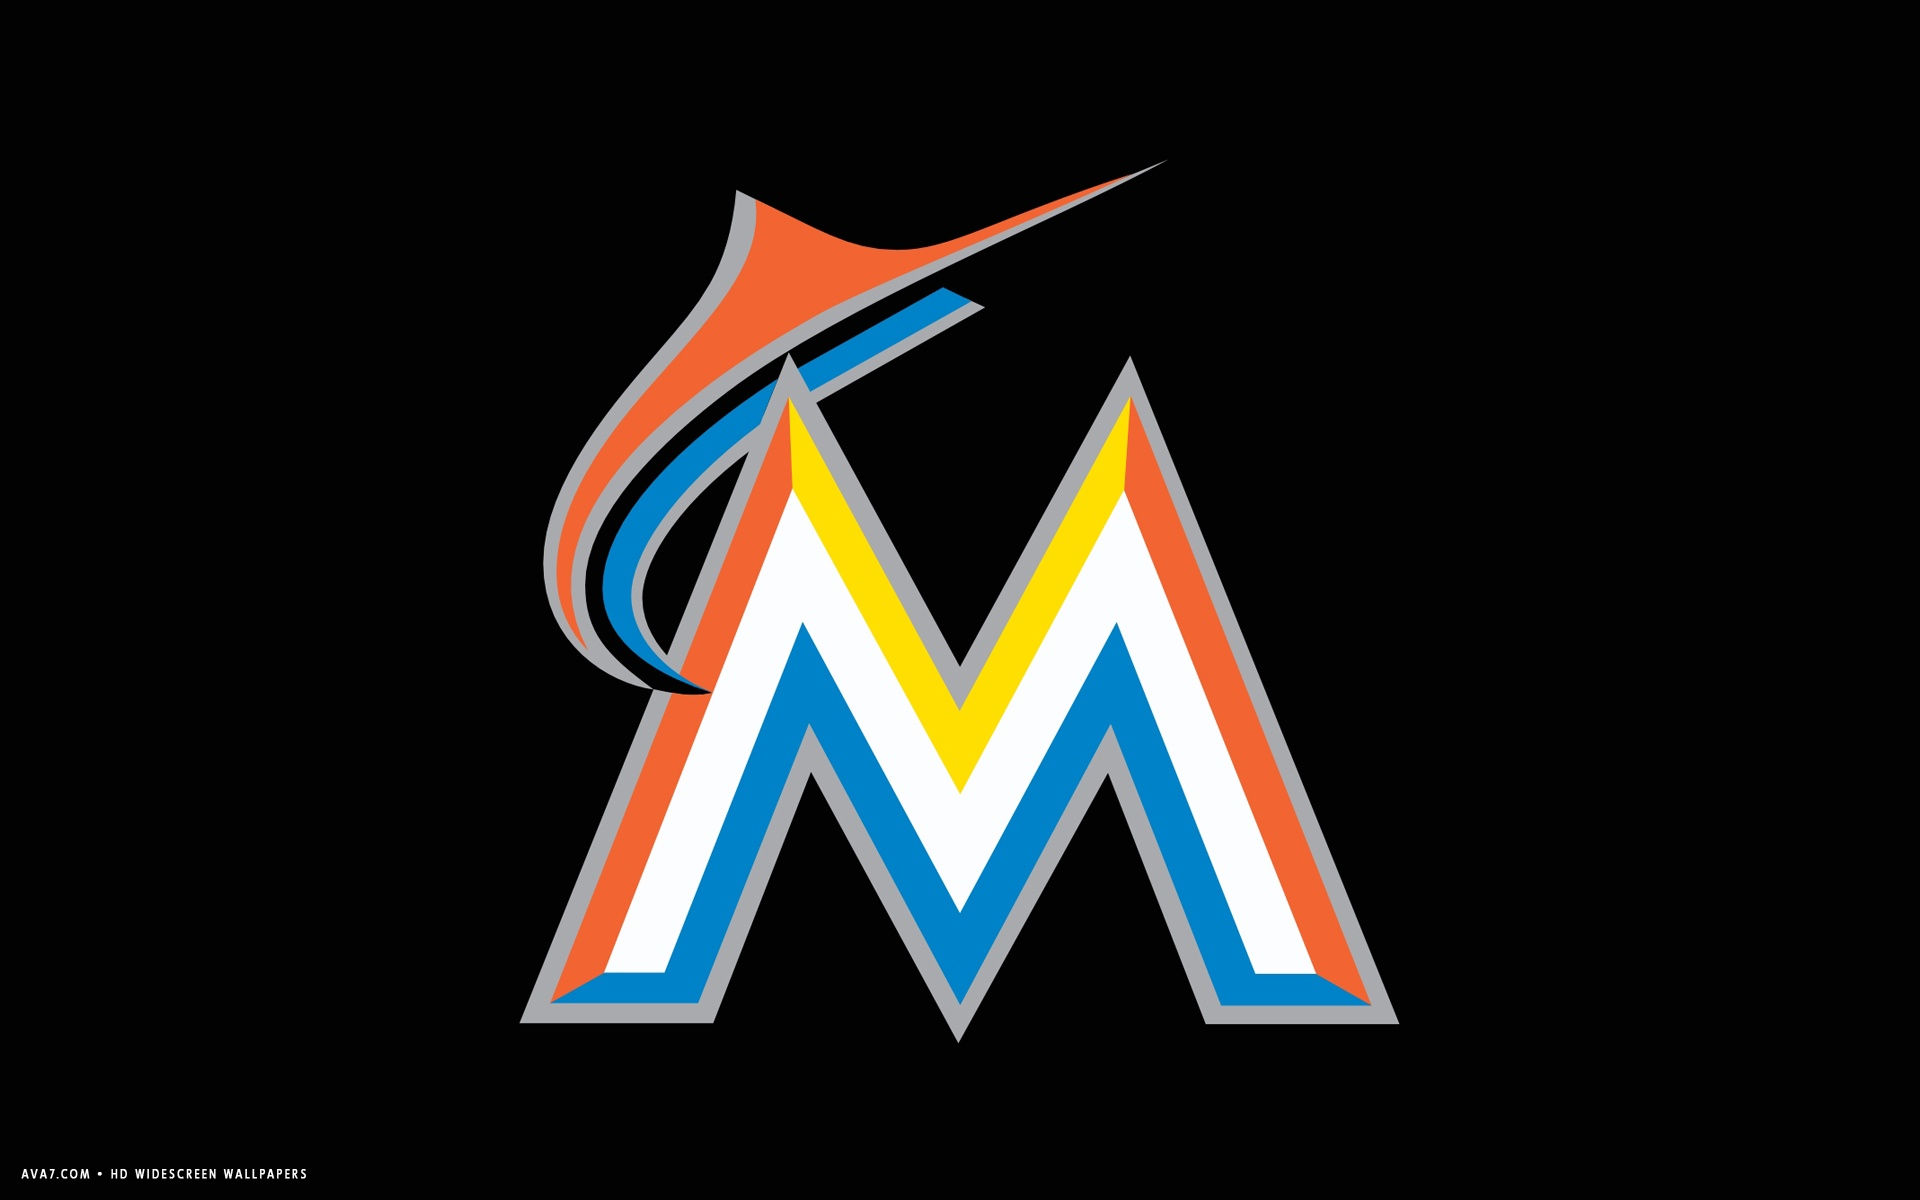 miami marlins mlb baseball team hd widescreen wallpaper baseball 1920x1200